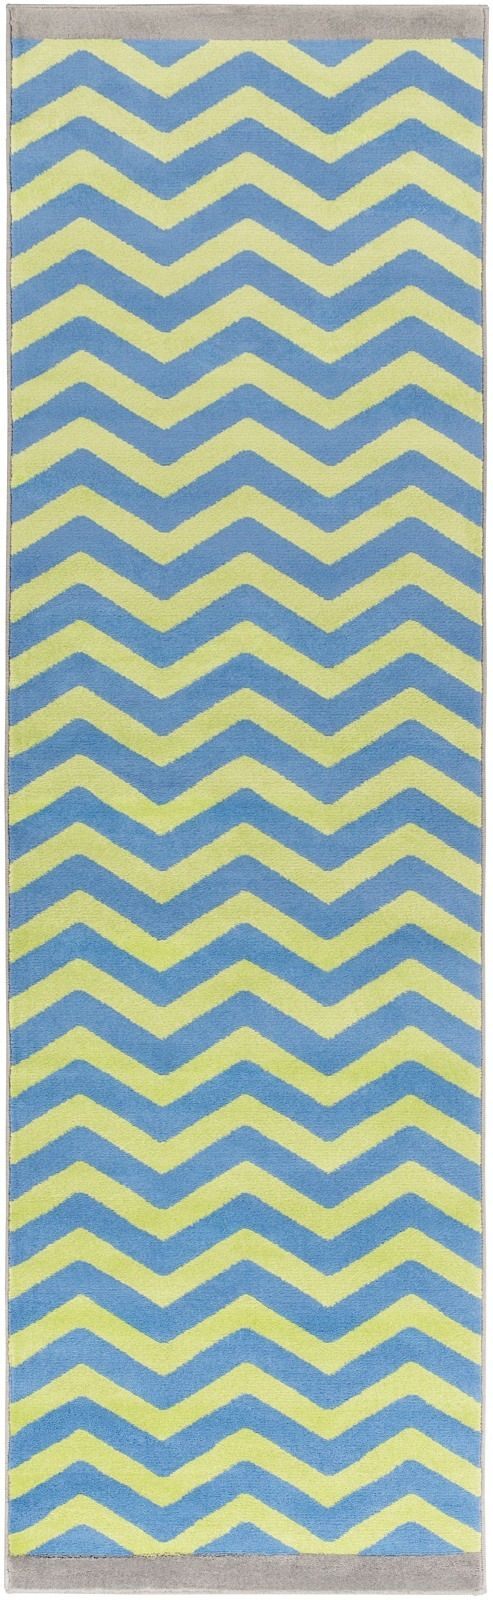 surya bambino kids area rug collection